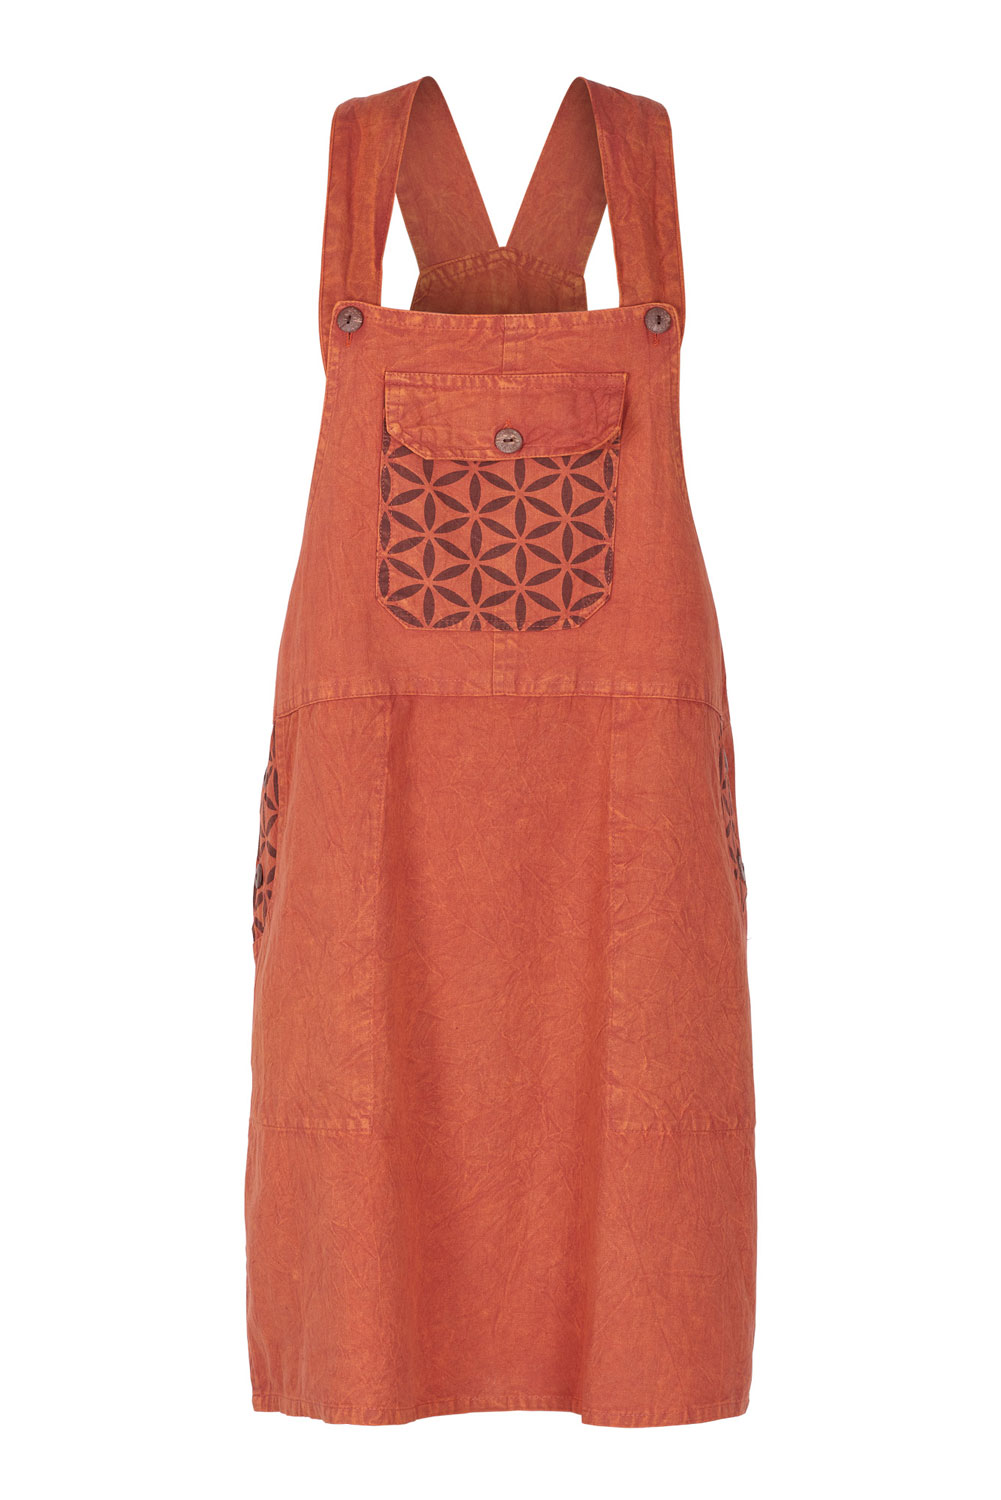 Flower of Life pinafore dress